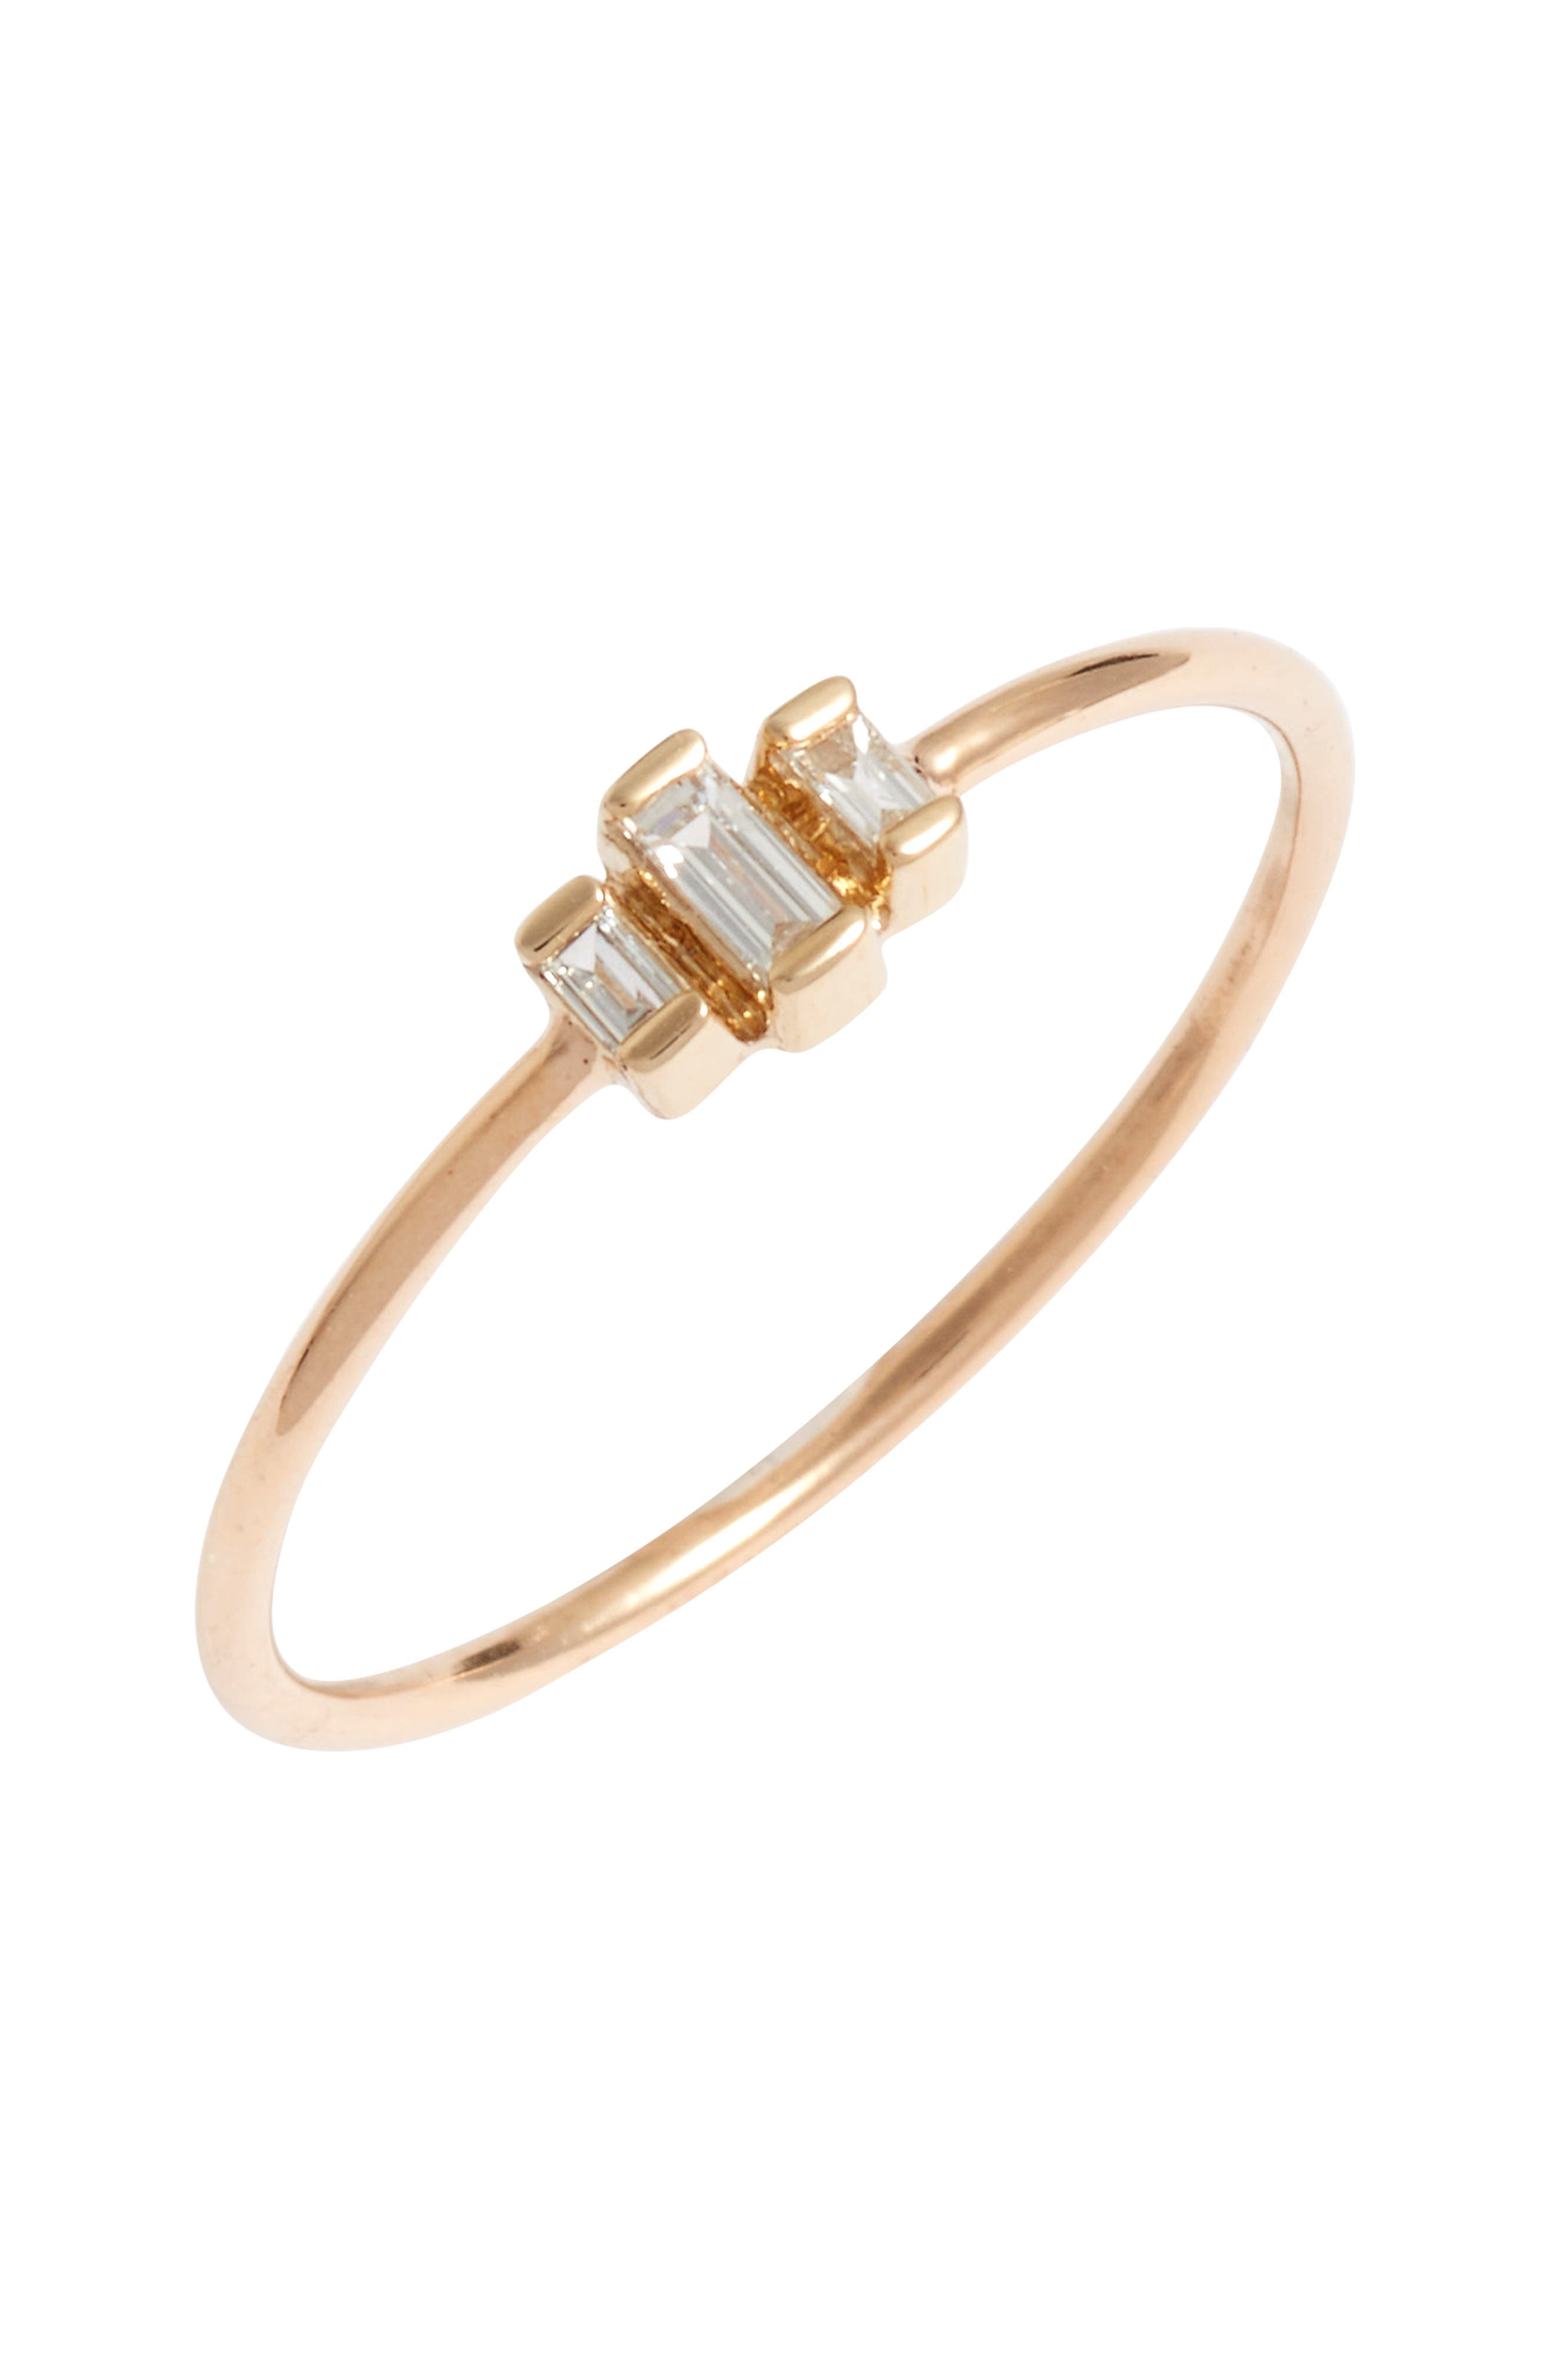 Main Image - Zoë Chicco Diamond Baguette Stack Ring